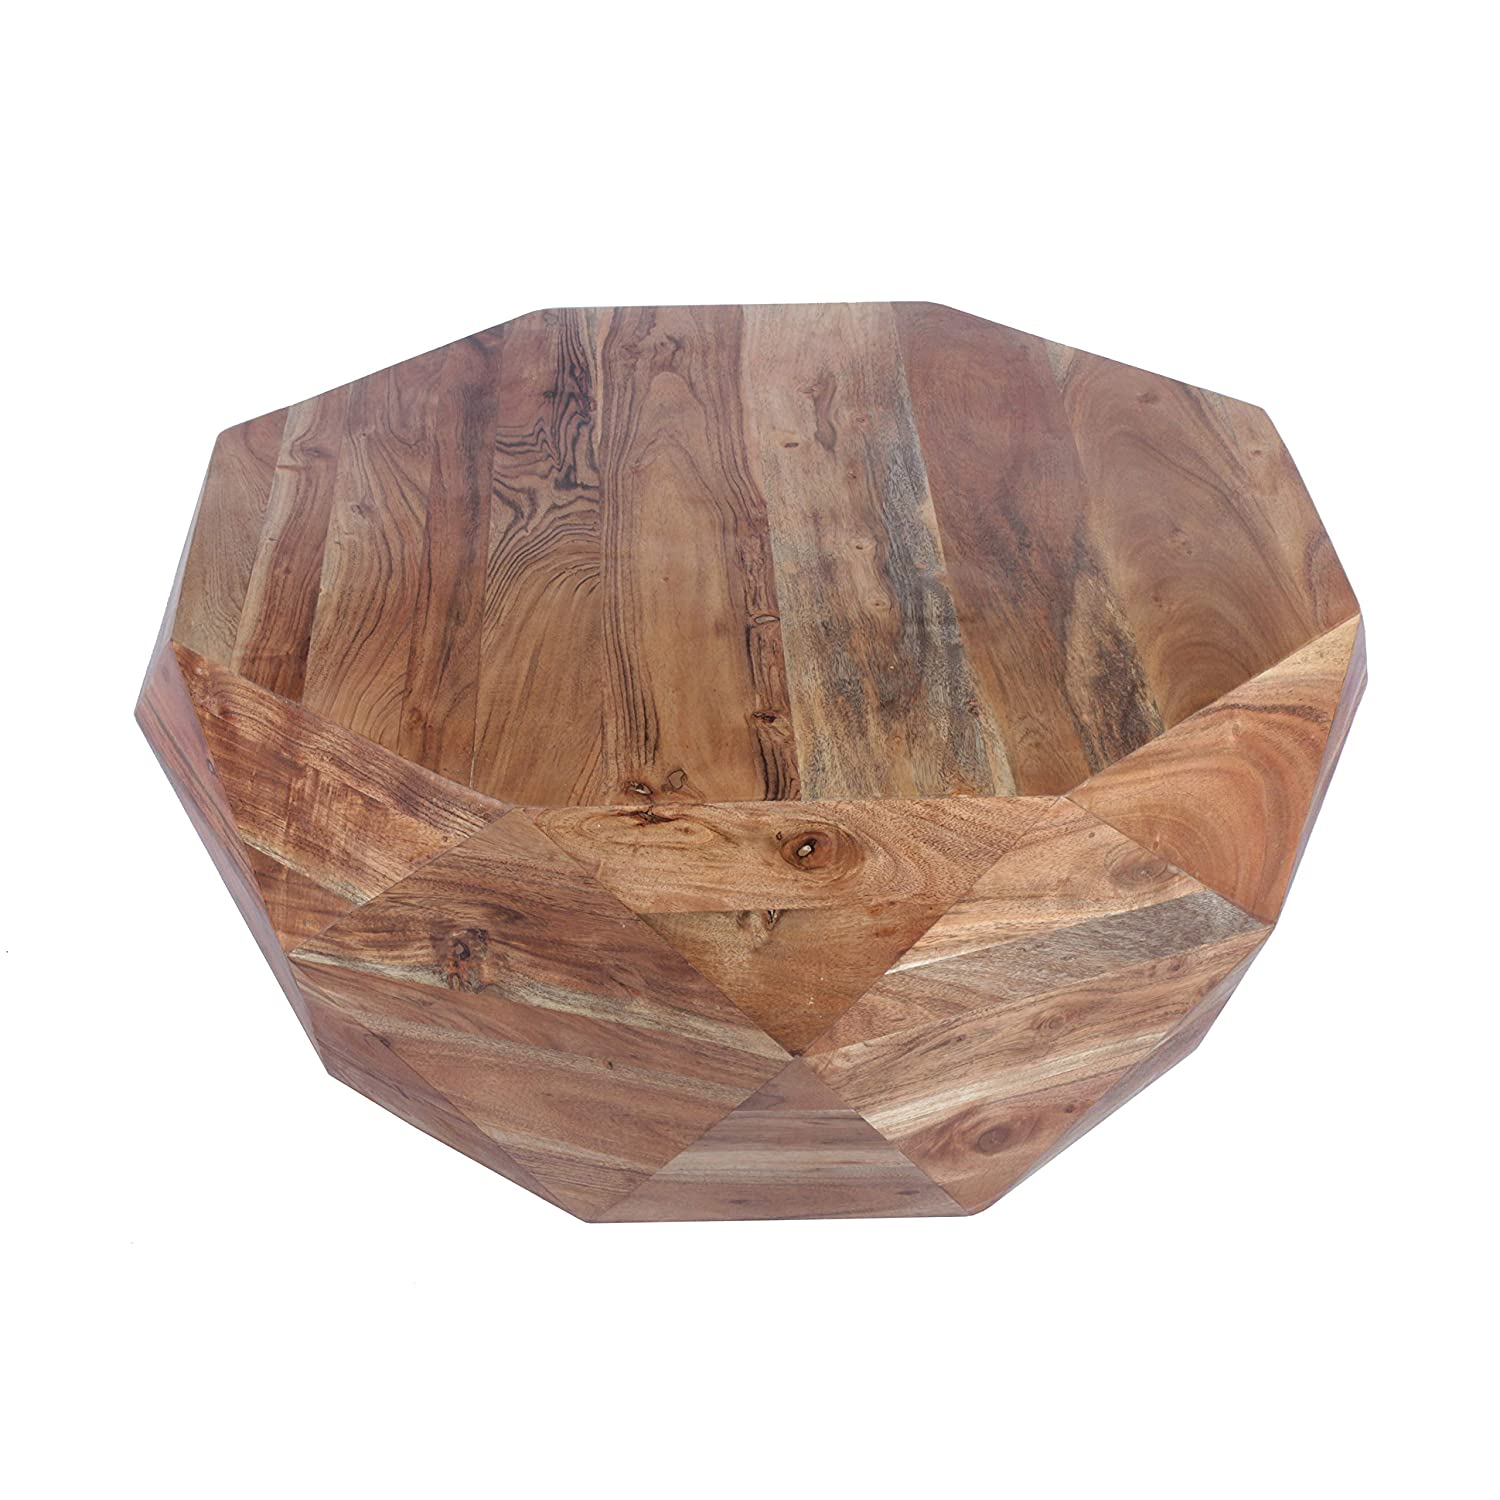 The Urban Port UPT-183796 Diamond Shape Acacia Wood Coffee Table with Smooth Top, Natural Brown, Hexagon